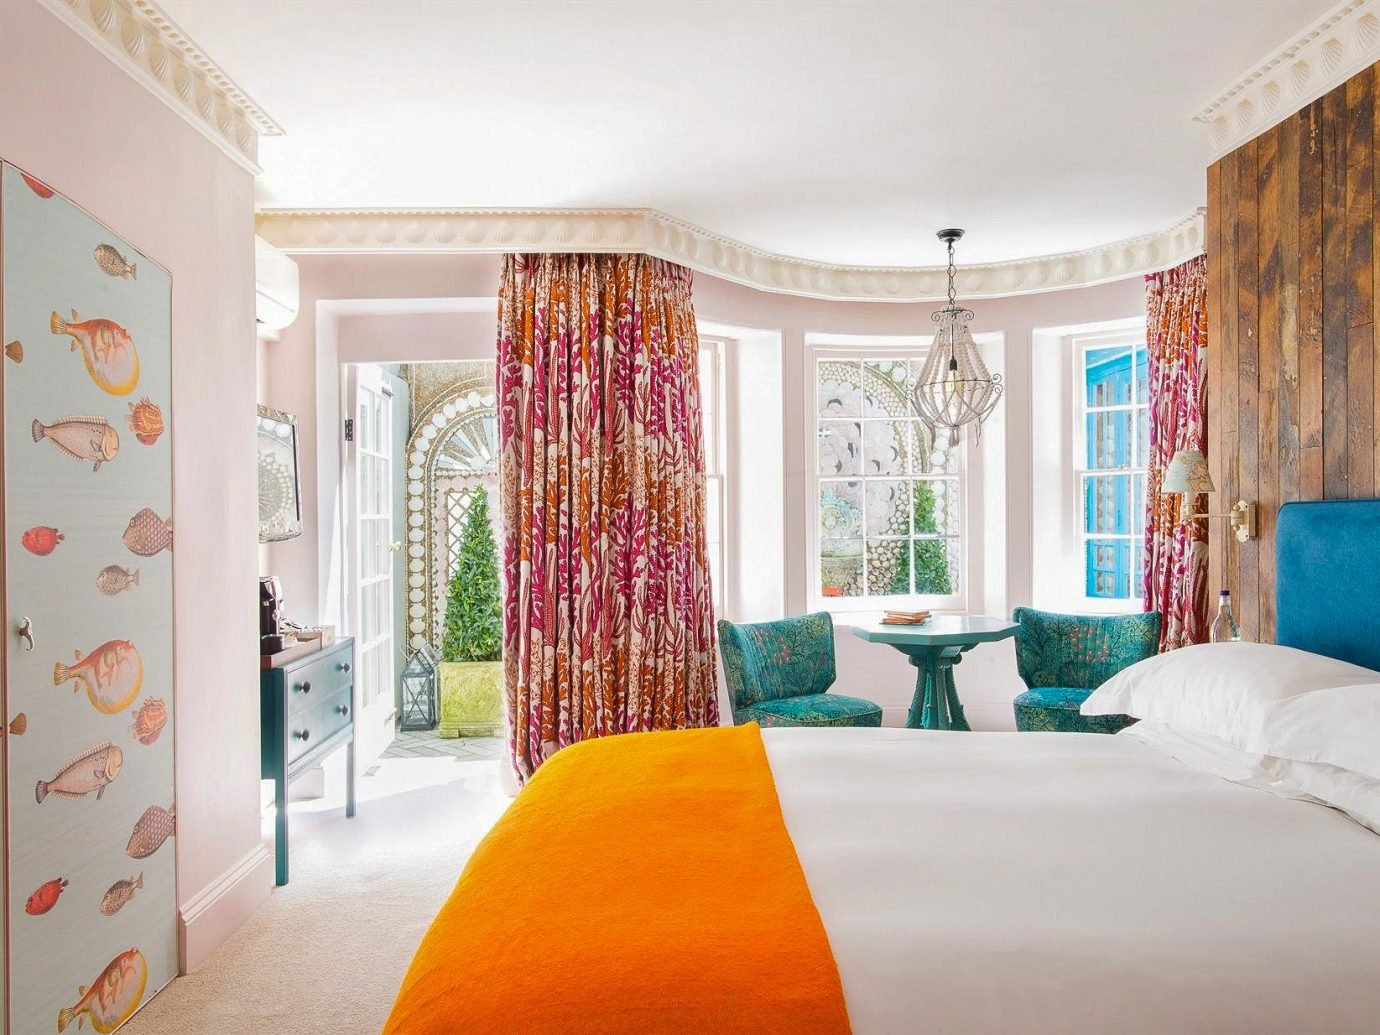 Boutique Hotels London Romantic Hotels indoor wall bed room Bedroom property interior design curtain Suite window treatment home real estate ceiling textile window white bed sheet estate hotel window covering furniture bedding interior designer apartment orange decorated bed frame living room